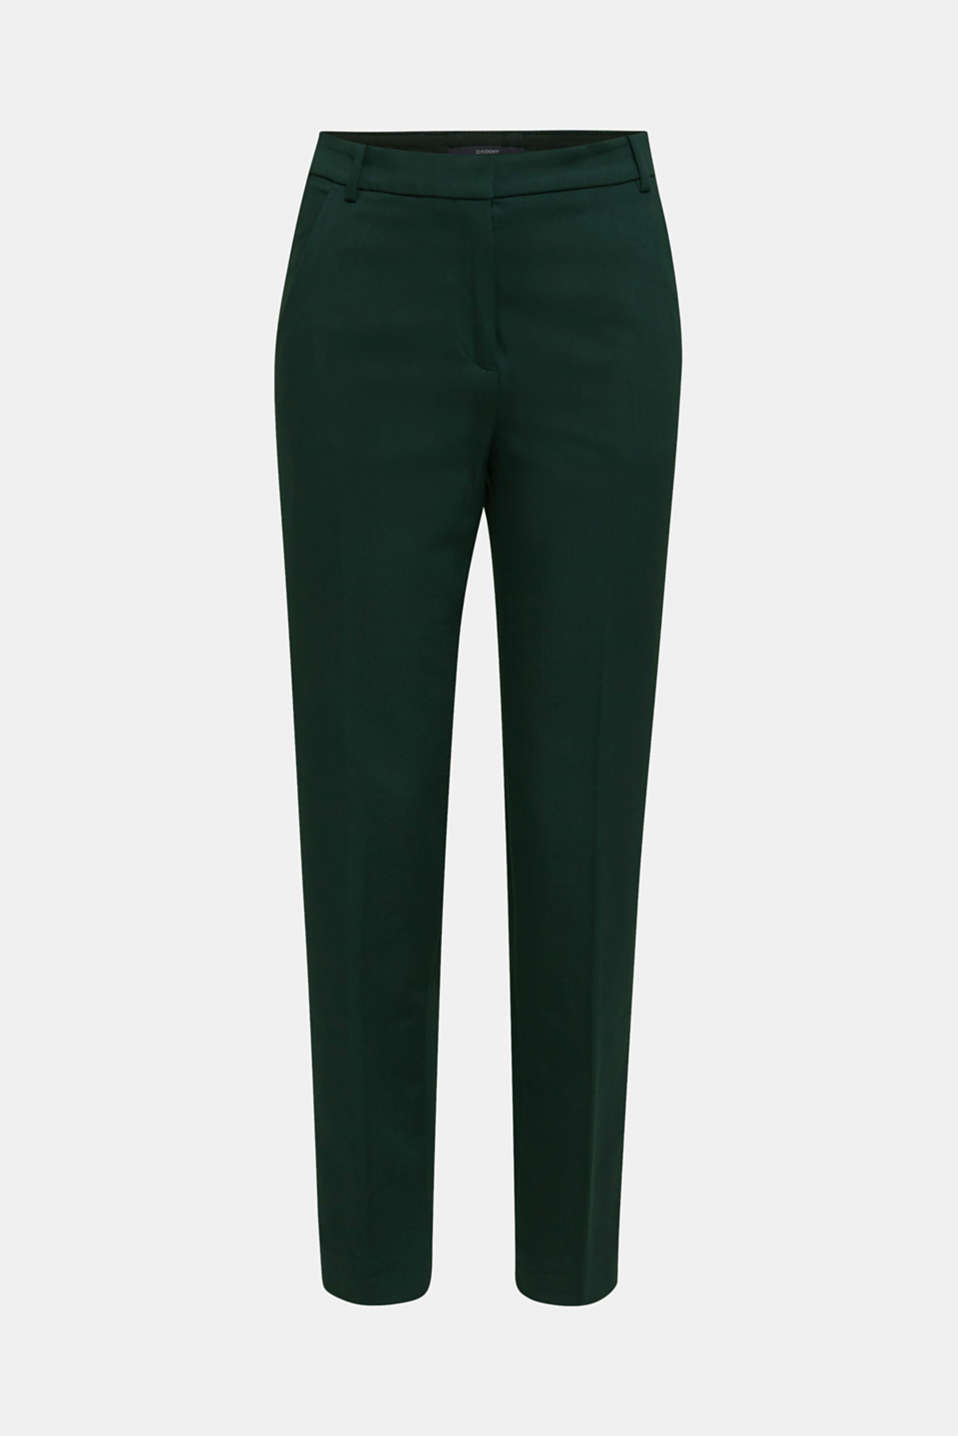 Stretch trousers with pressed pleats, DARK TEAL GREEN, detail image number 9